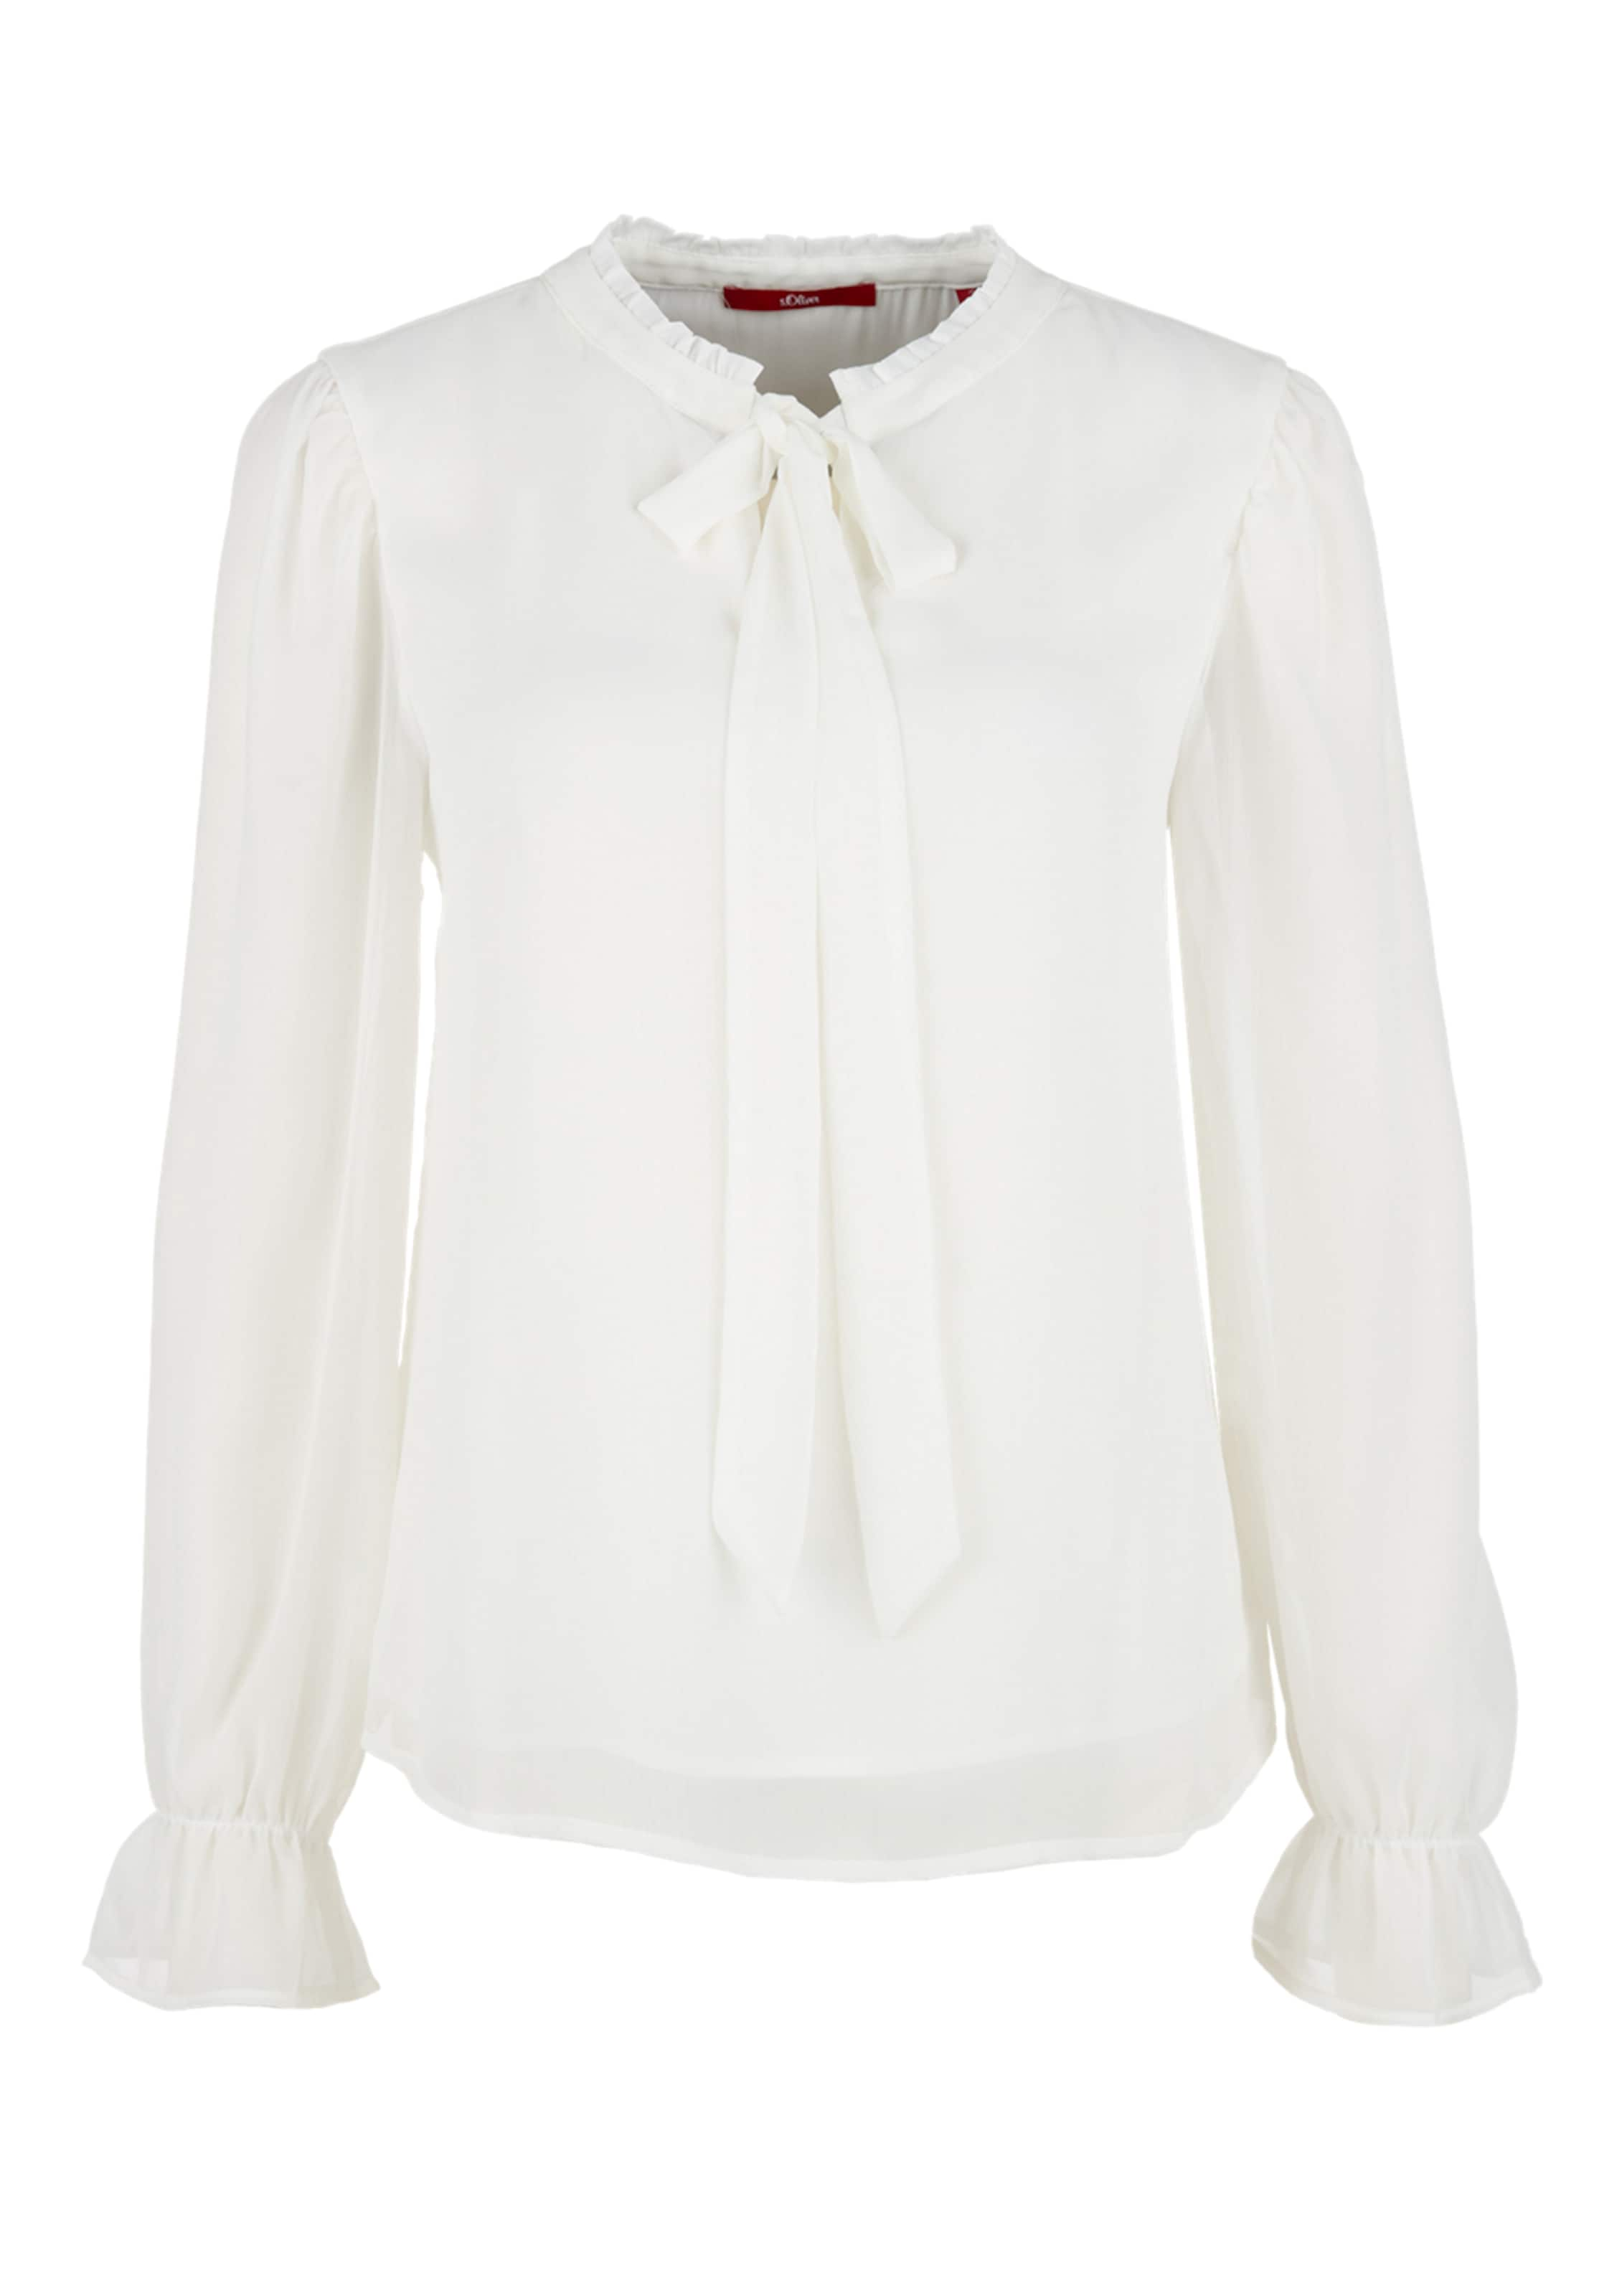 oliver Red Label In S Naturweiß Bluse xodWCeQrB